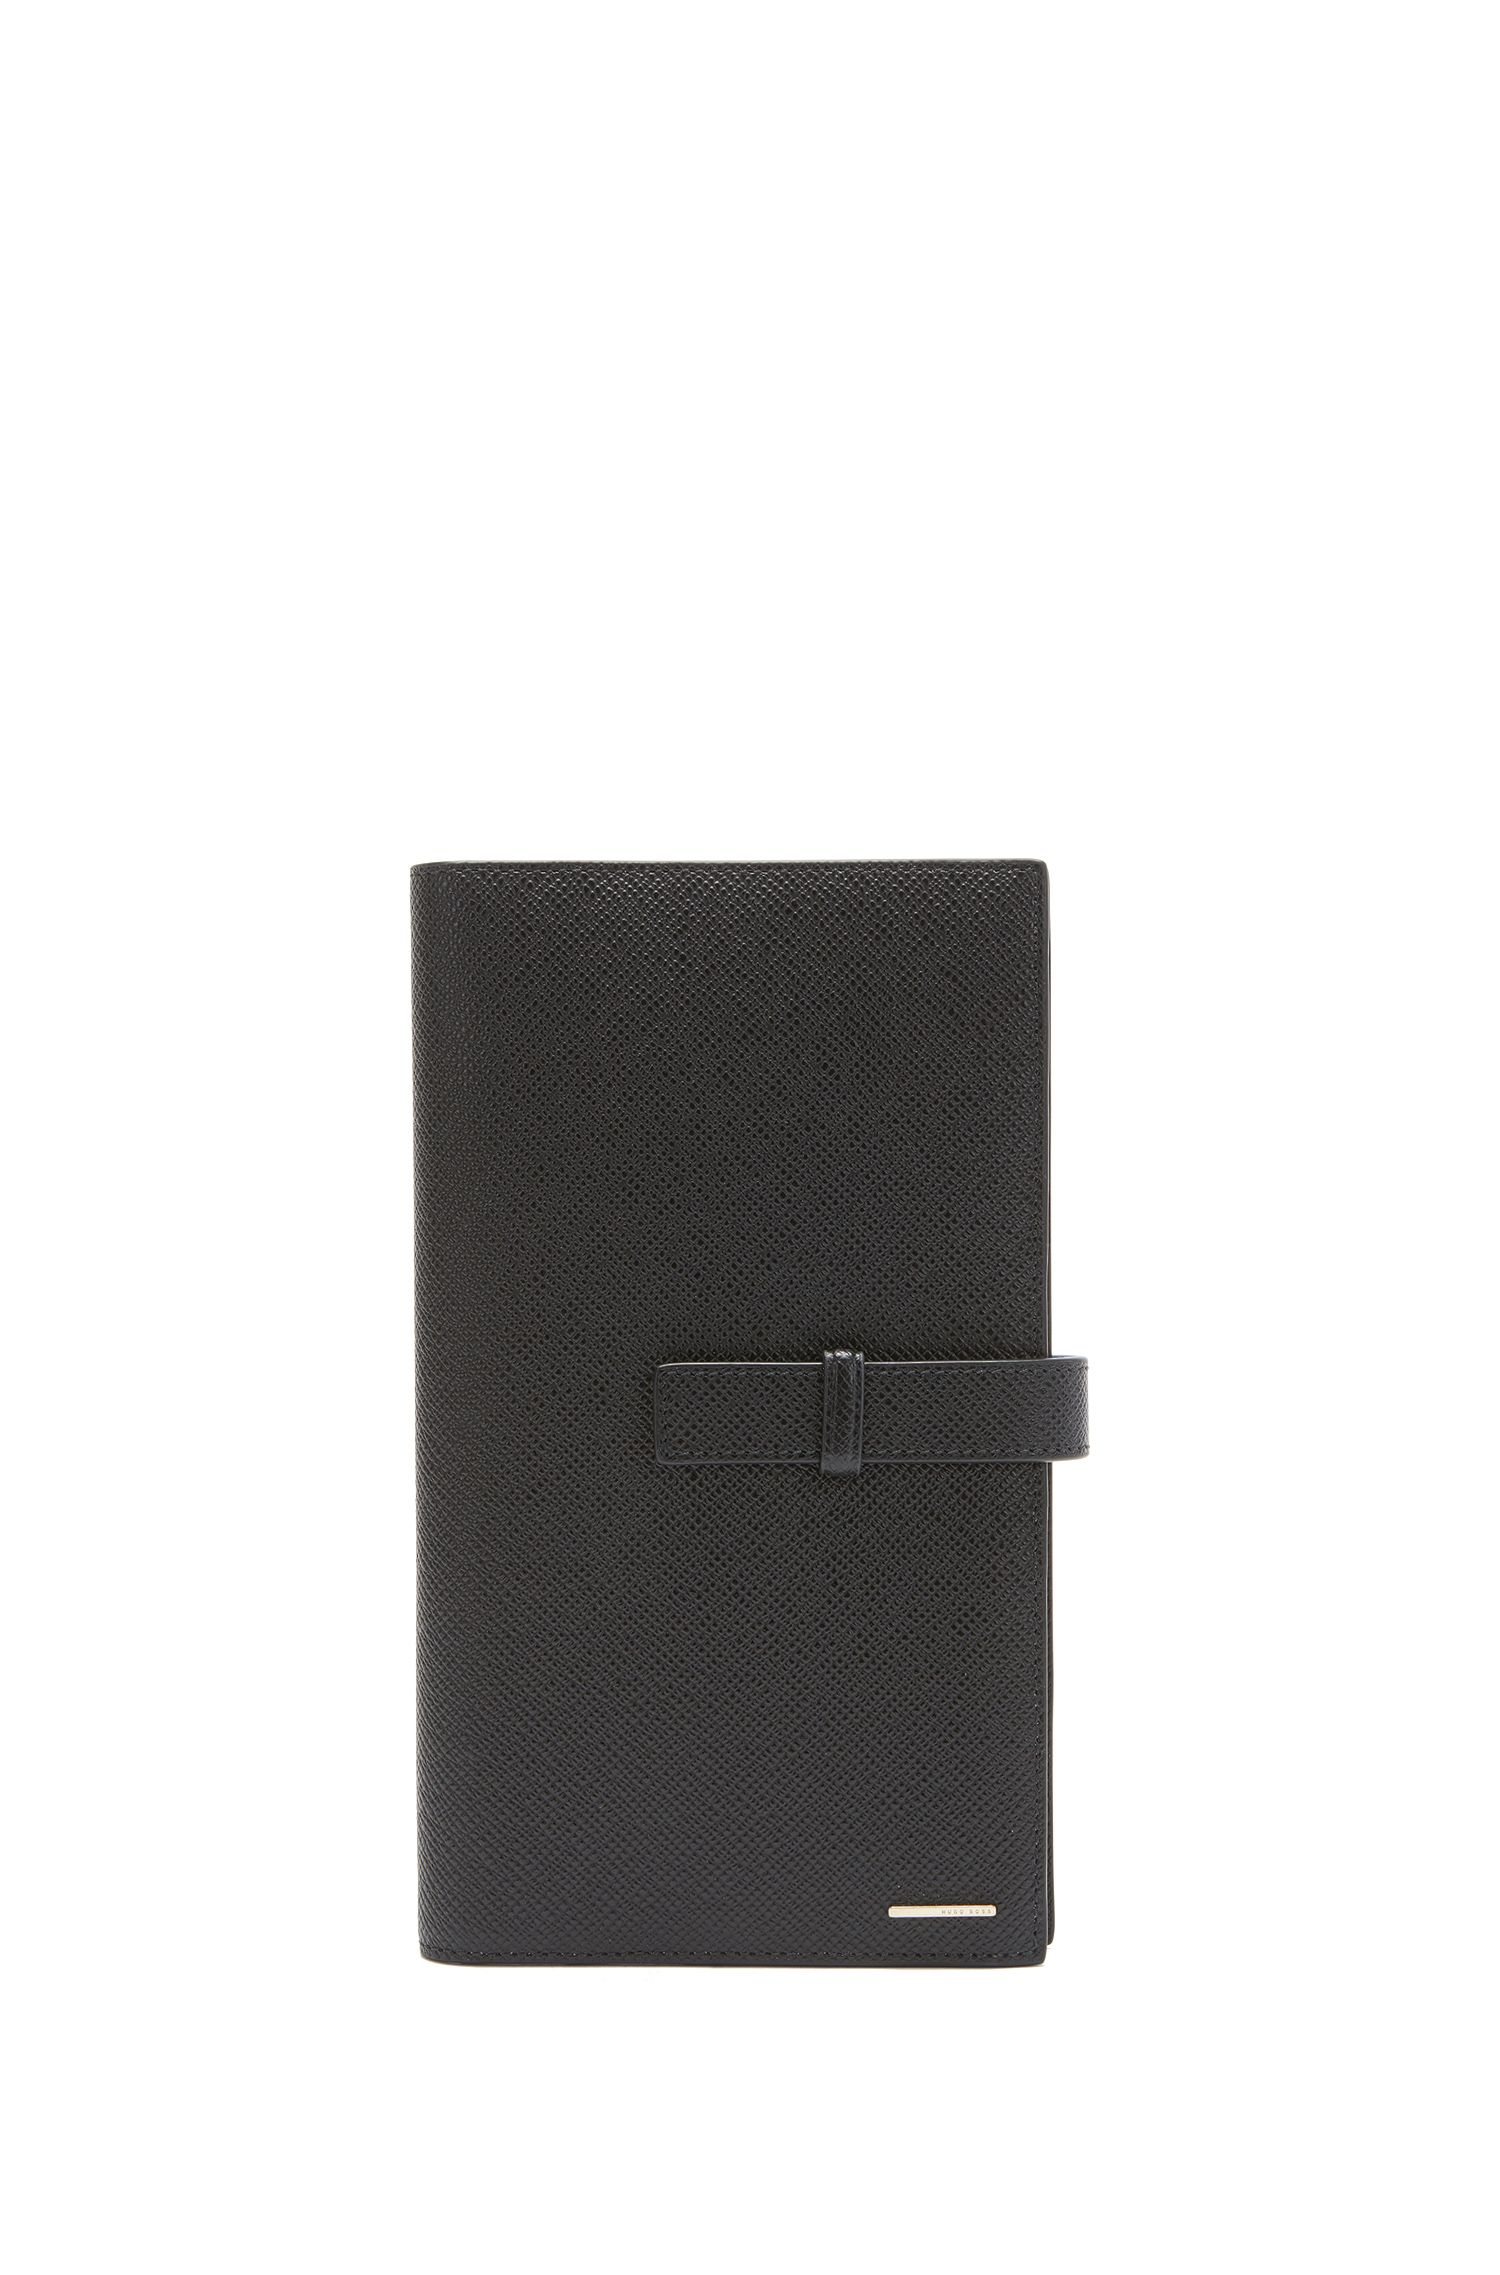 Embossed Leather Travel Wallet | Staple Travel Wallet